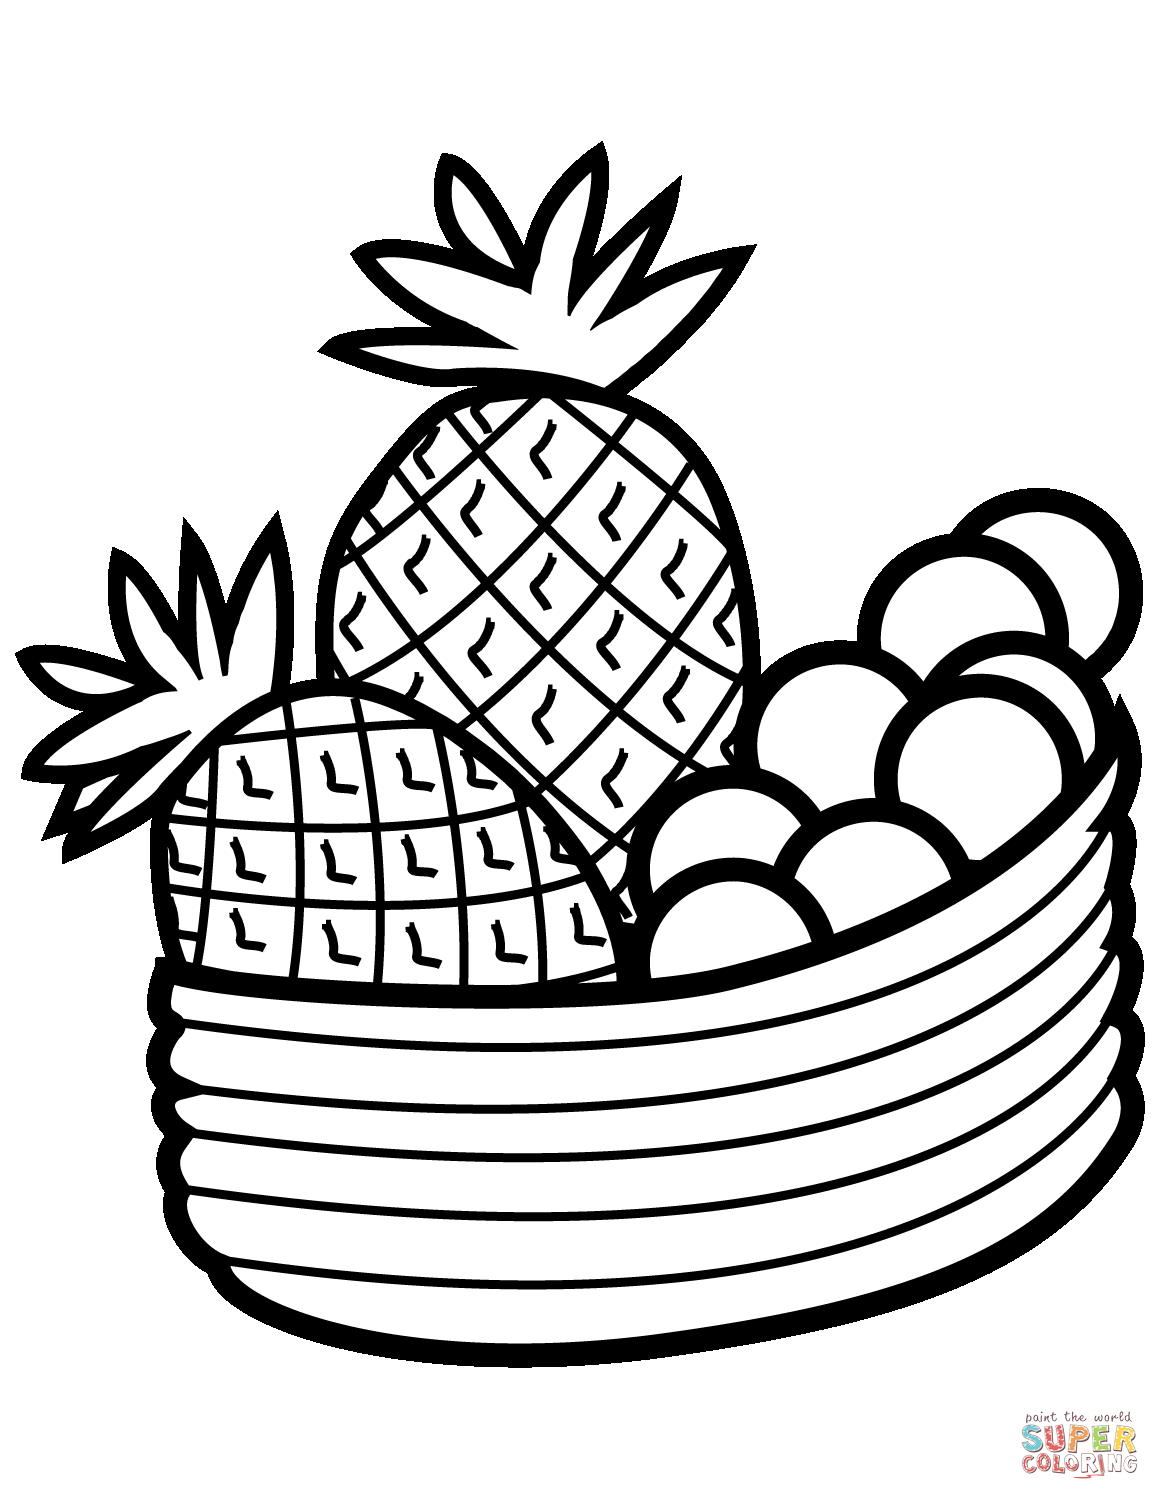 1160x1500 Pineapple And Cross Section Coloring Page Free Printable